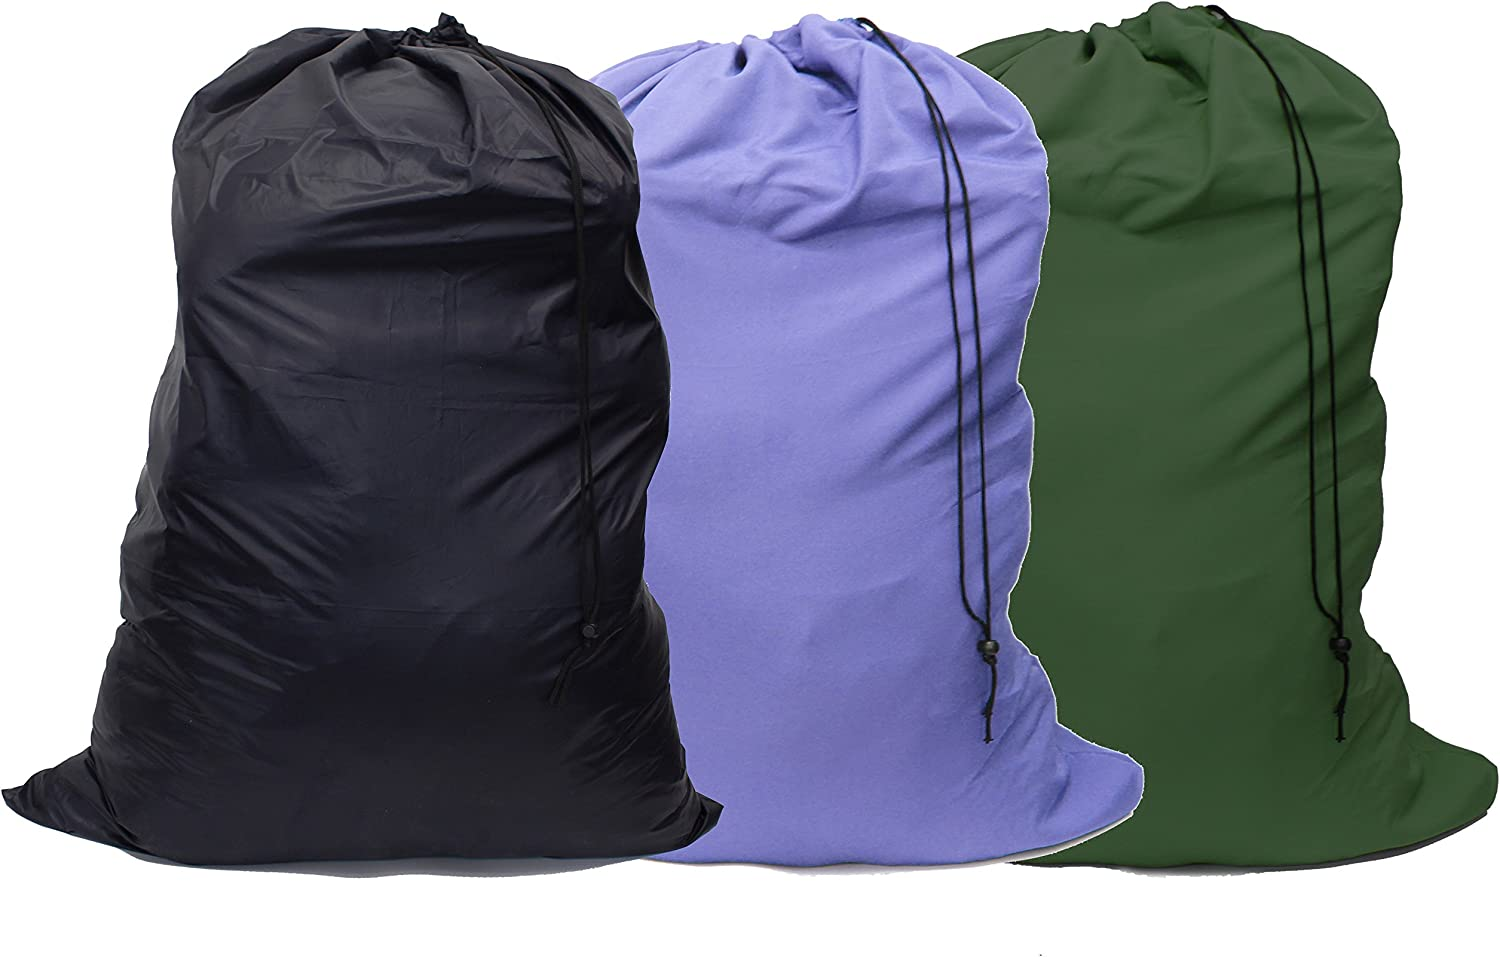 "YETHAN Extra Large Laundry Bag 3 Pack, Travel Laundry Bags with Drawstring Closure, 30""x40"", for College, Dorm and Apartment dwellers."